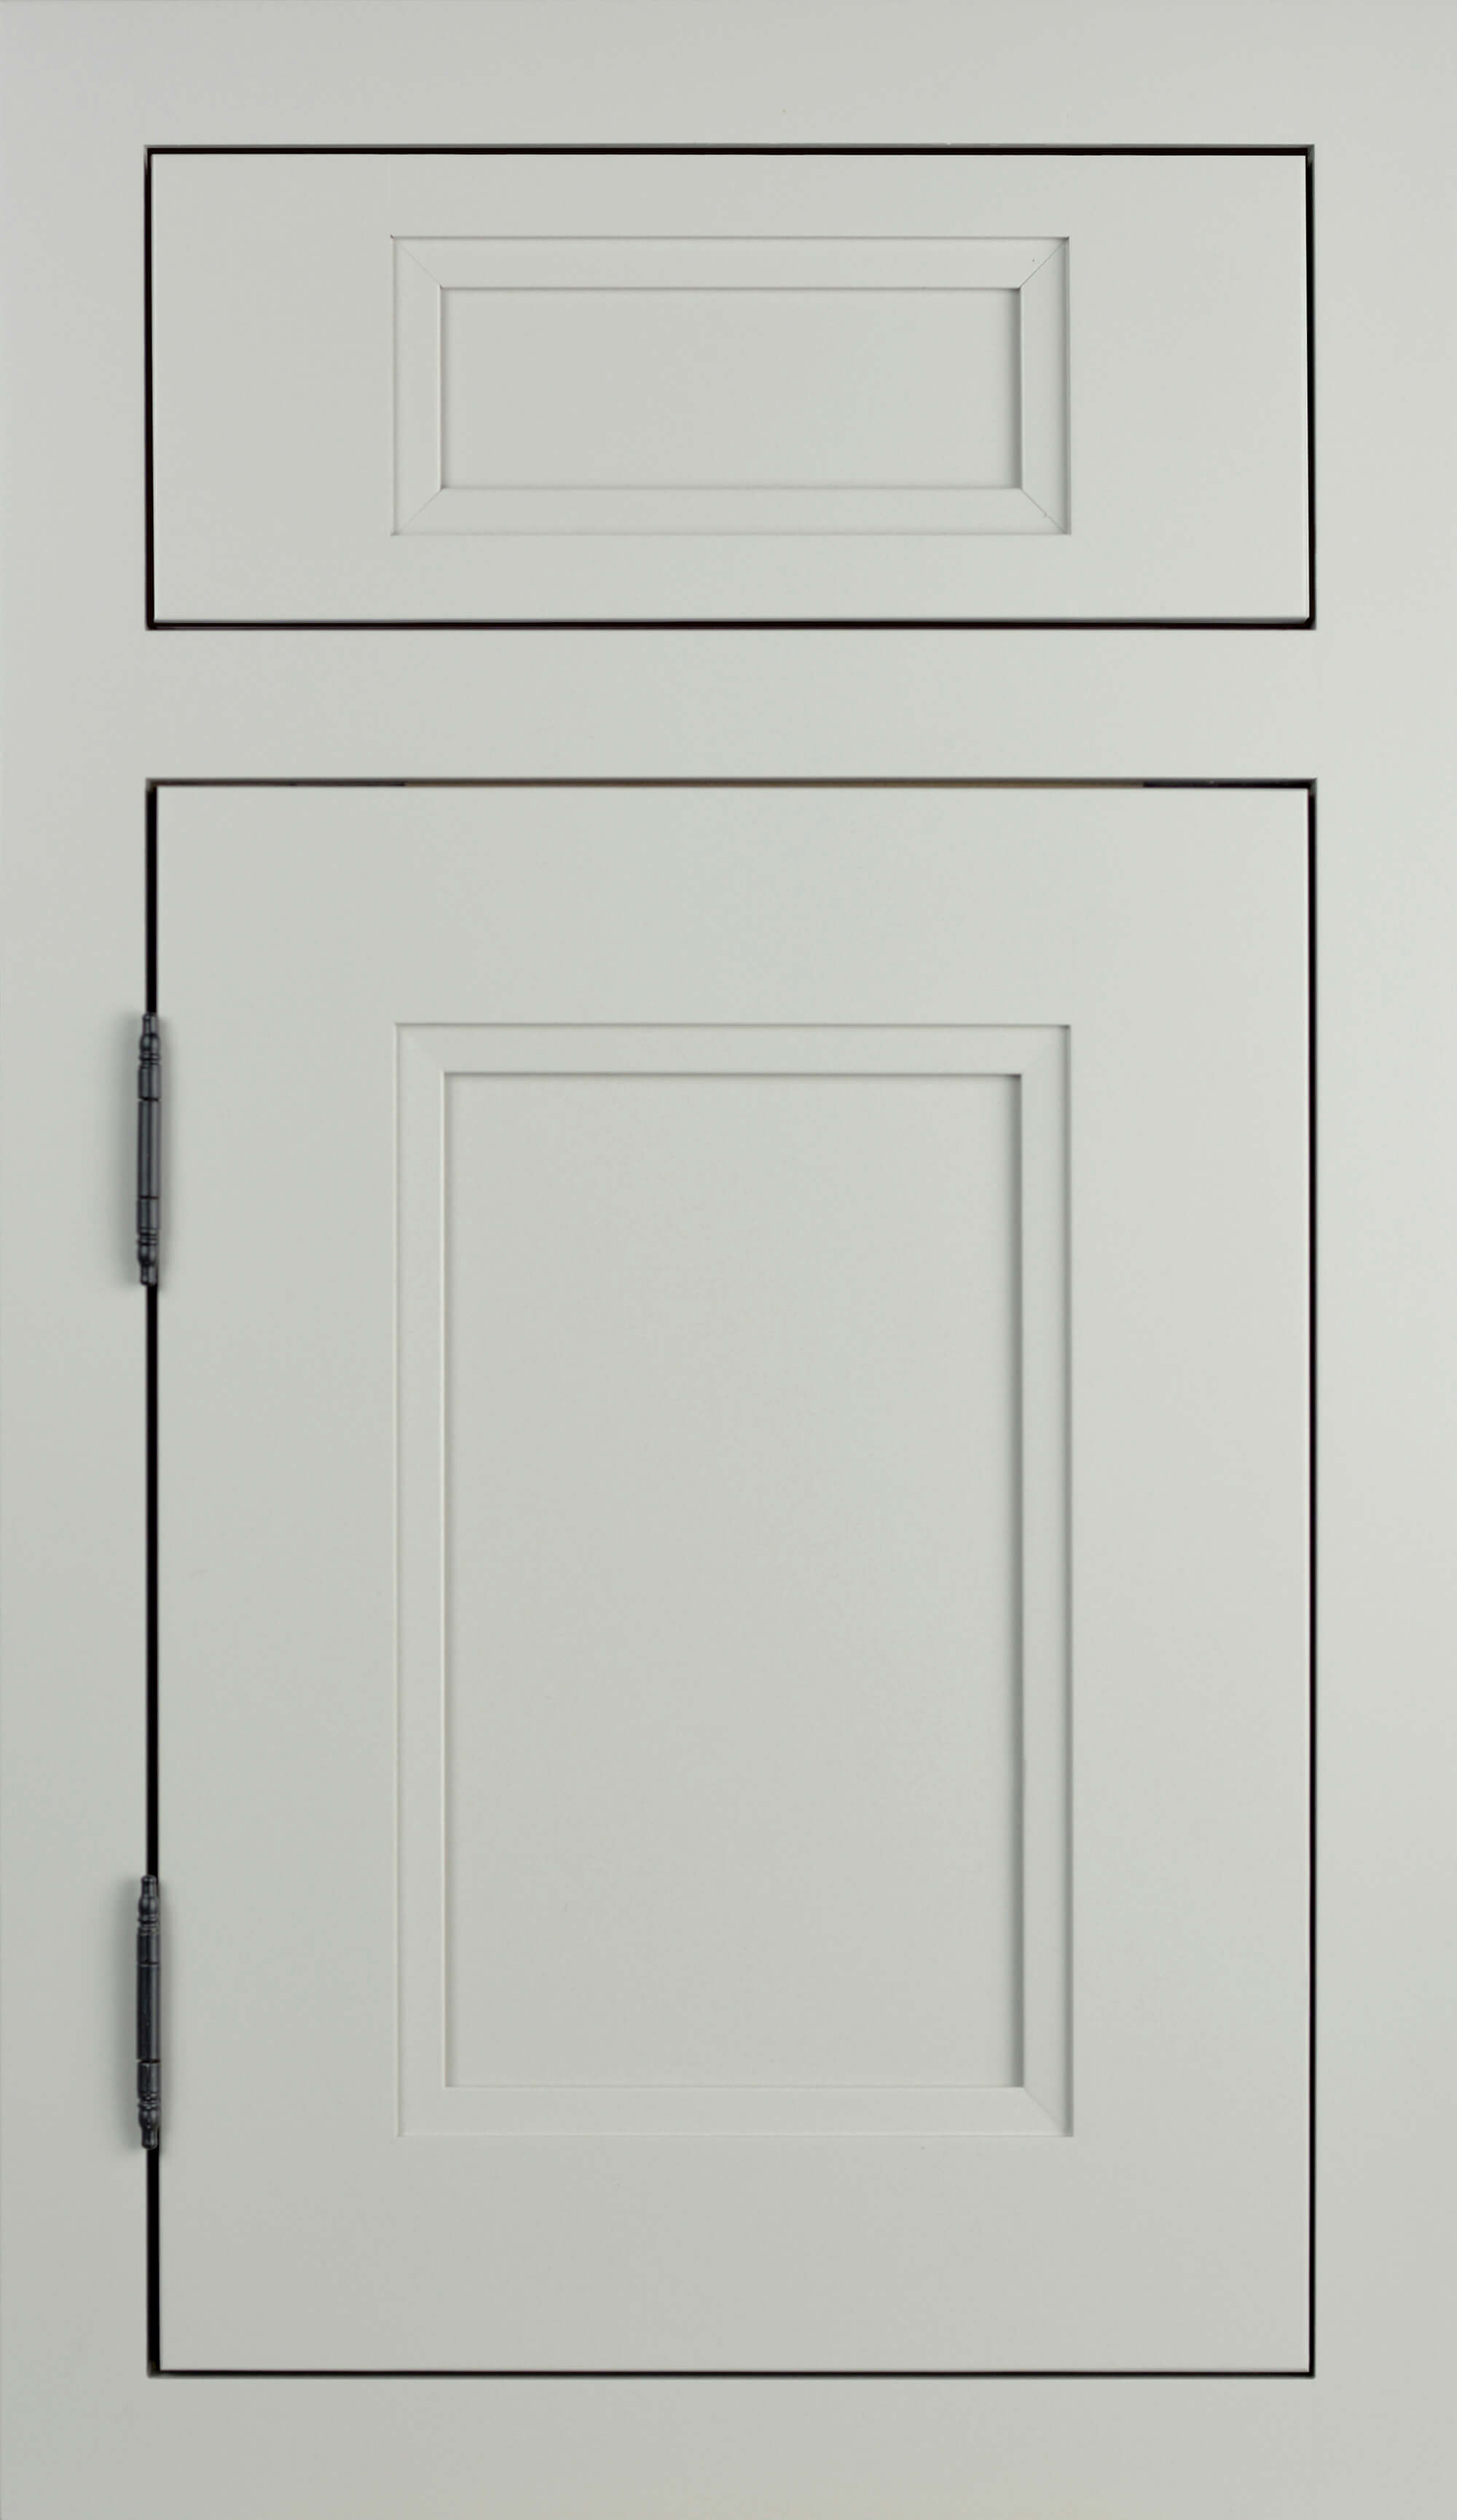 Dura Supreme Cabinetry, Inset Styling with Barrel Hinging on the Dempsey-Inset door style